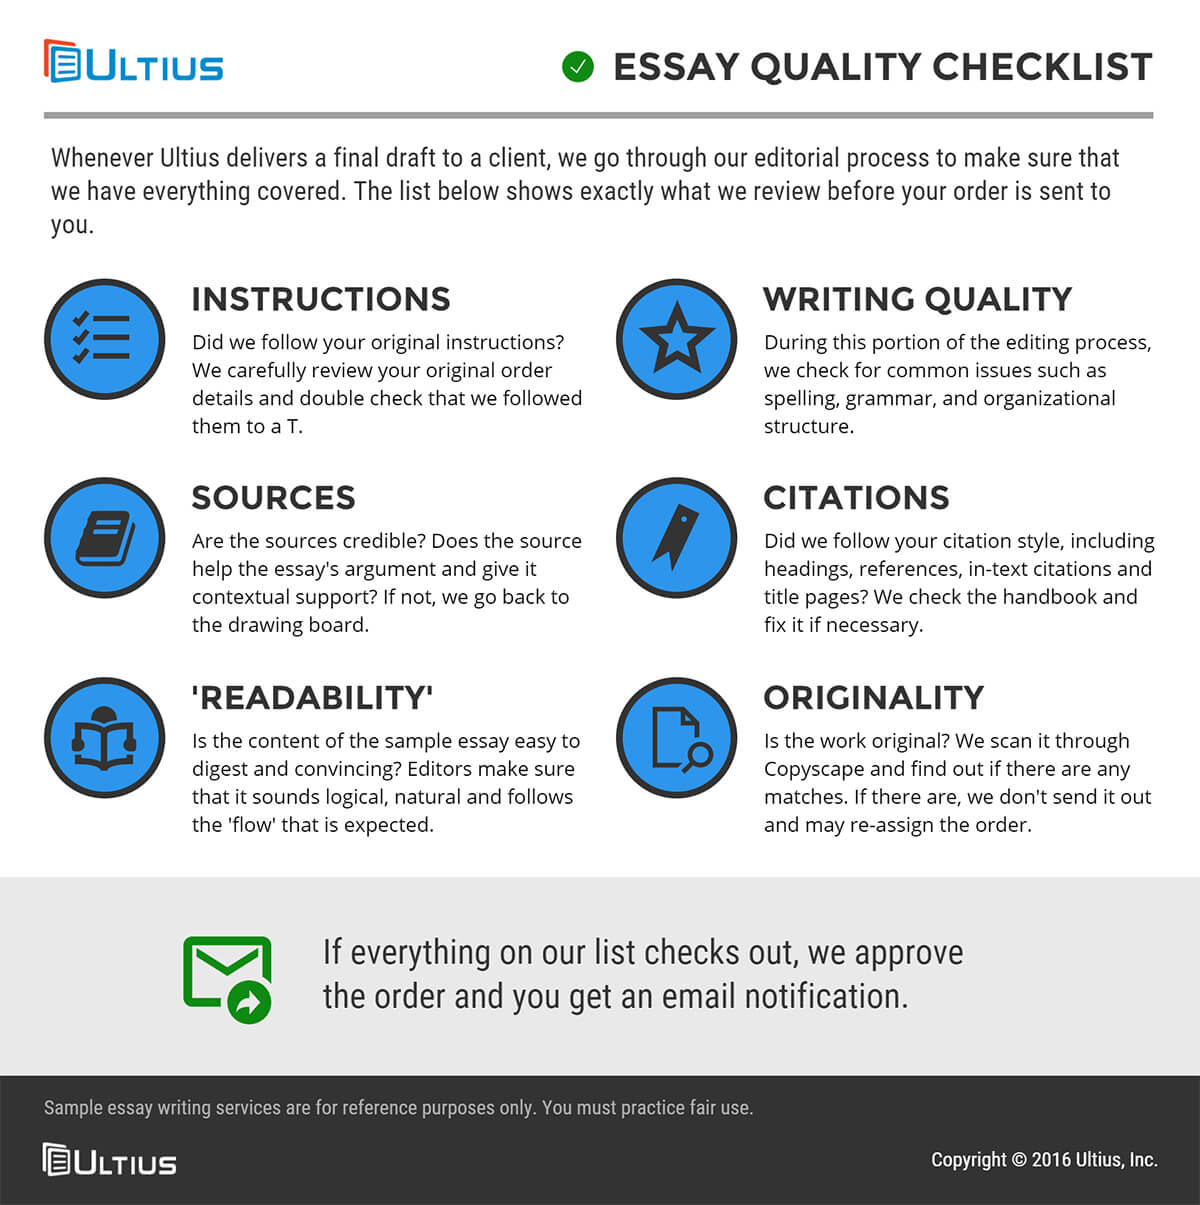 Research Paper Essay Example Quality Checklist When You Buy An Essay From Ultius Healthy Lifestyle Essay also Science And Technology Essay Topics Buy An Essay Online From Our Trusted Writing Service  Ultius Essays On Importance Of English